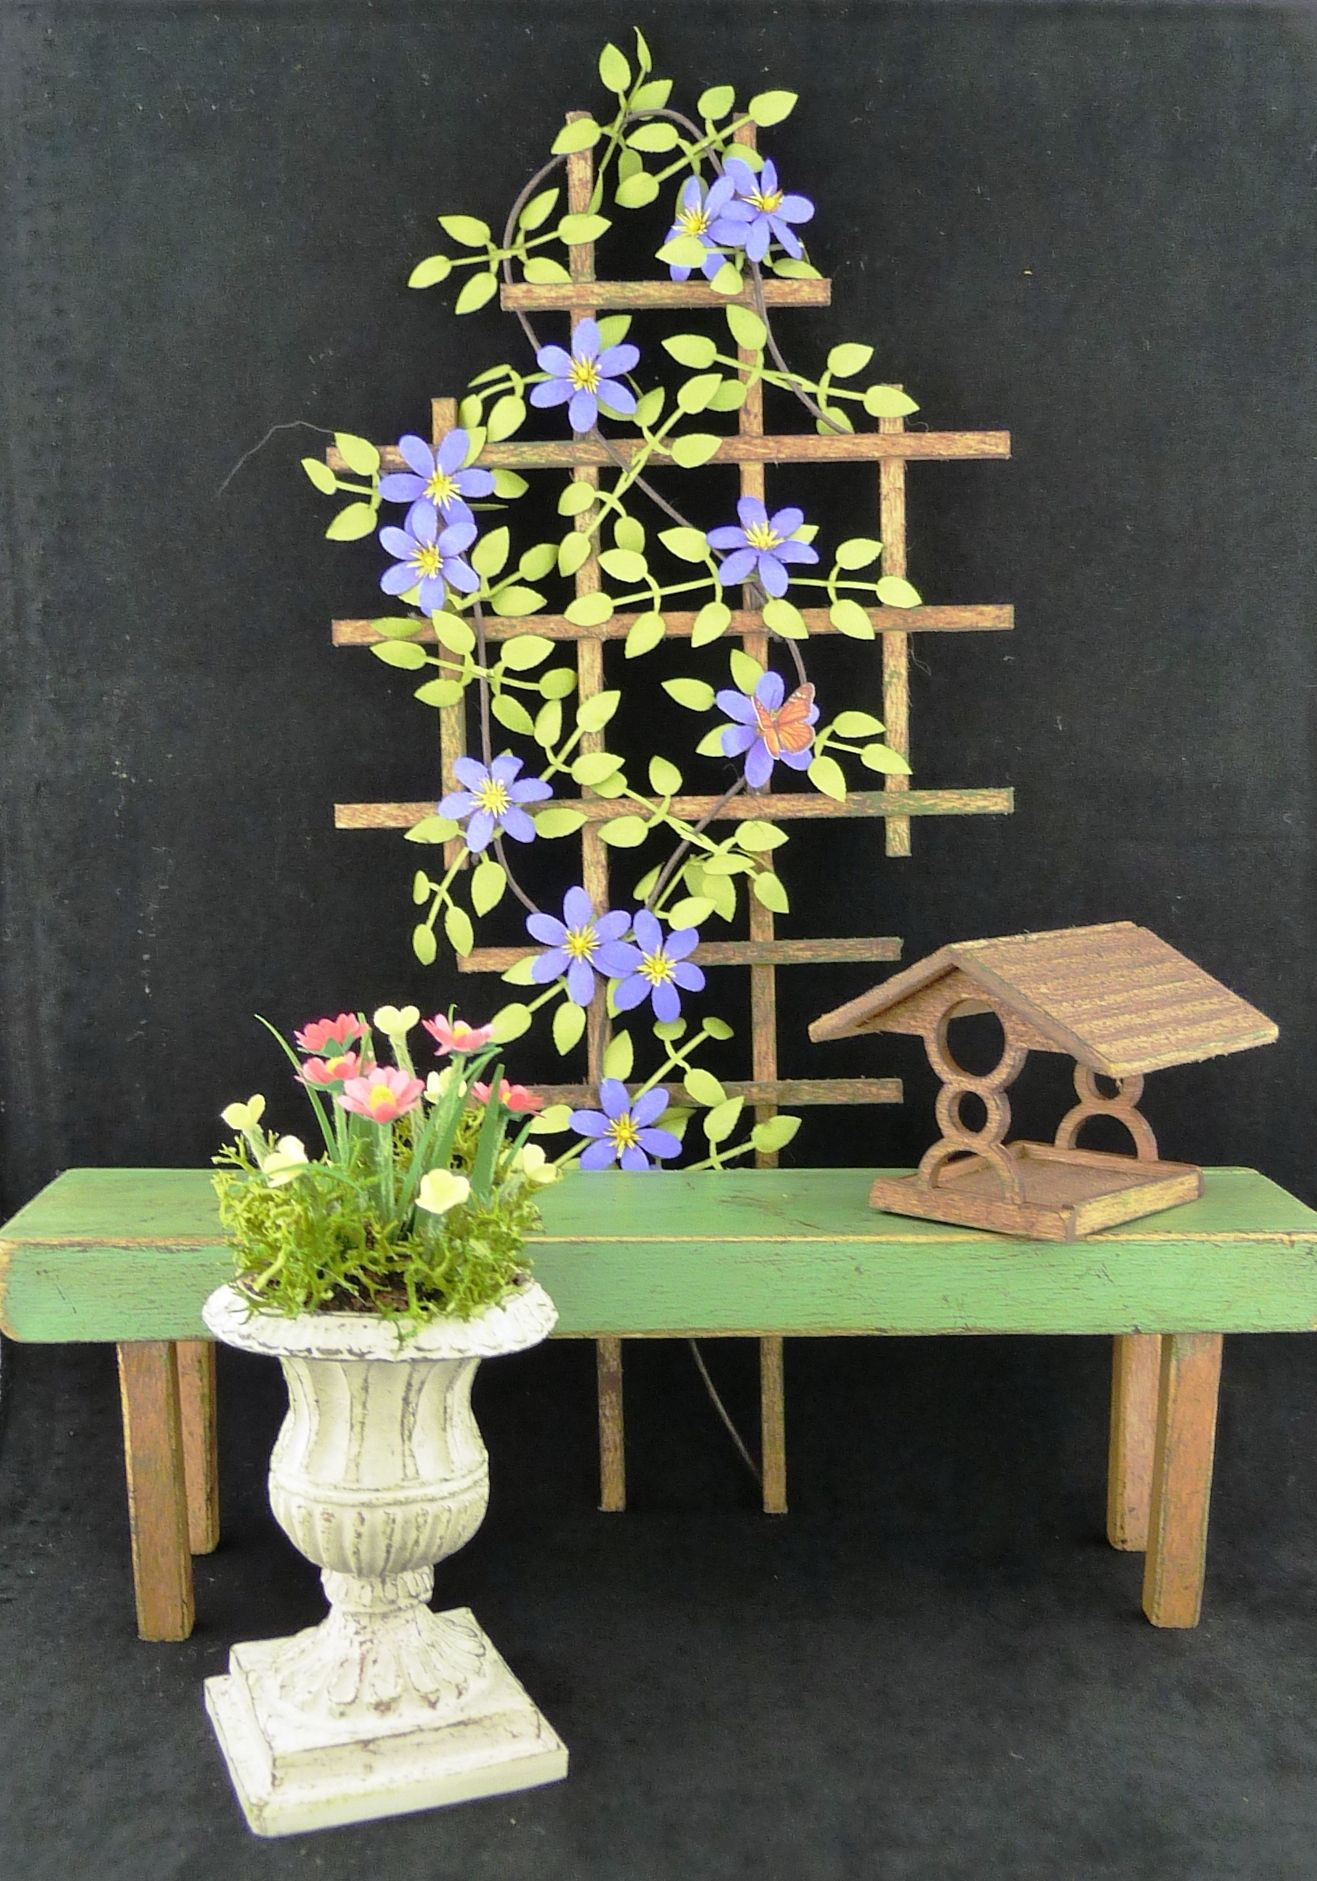 Terrific Miniature Gardening Bench Trellis And Accessories Tutorial Gmtry Best Dining Table And Chair Ideas Images Gmtryco